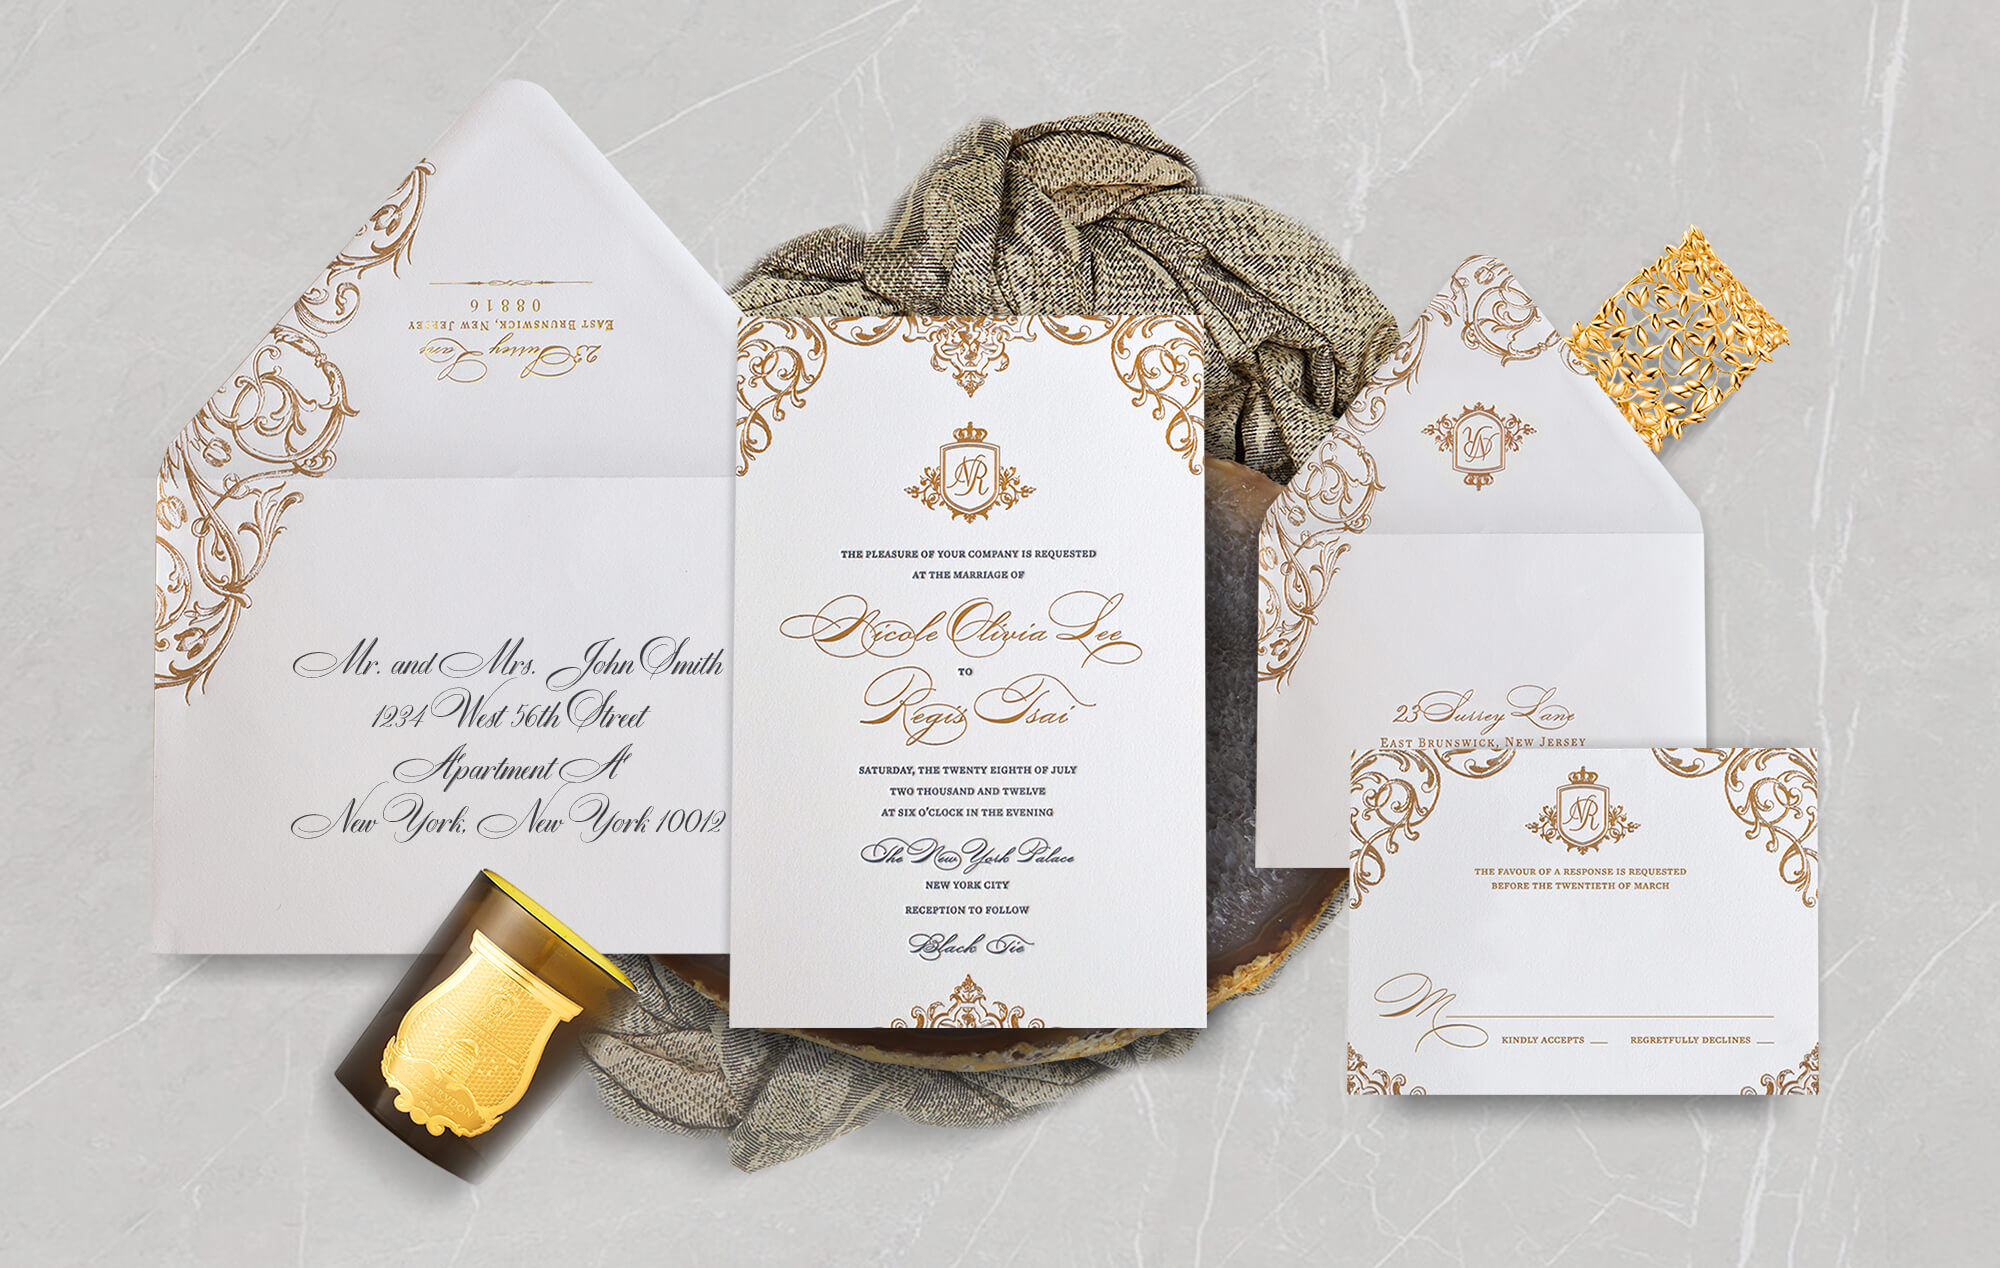 Ornate gold luxury wedding invitation